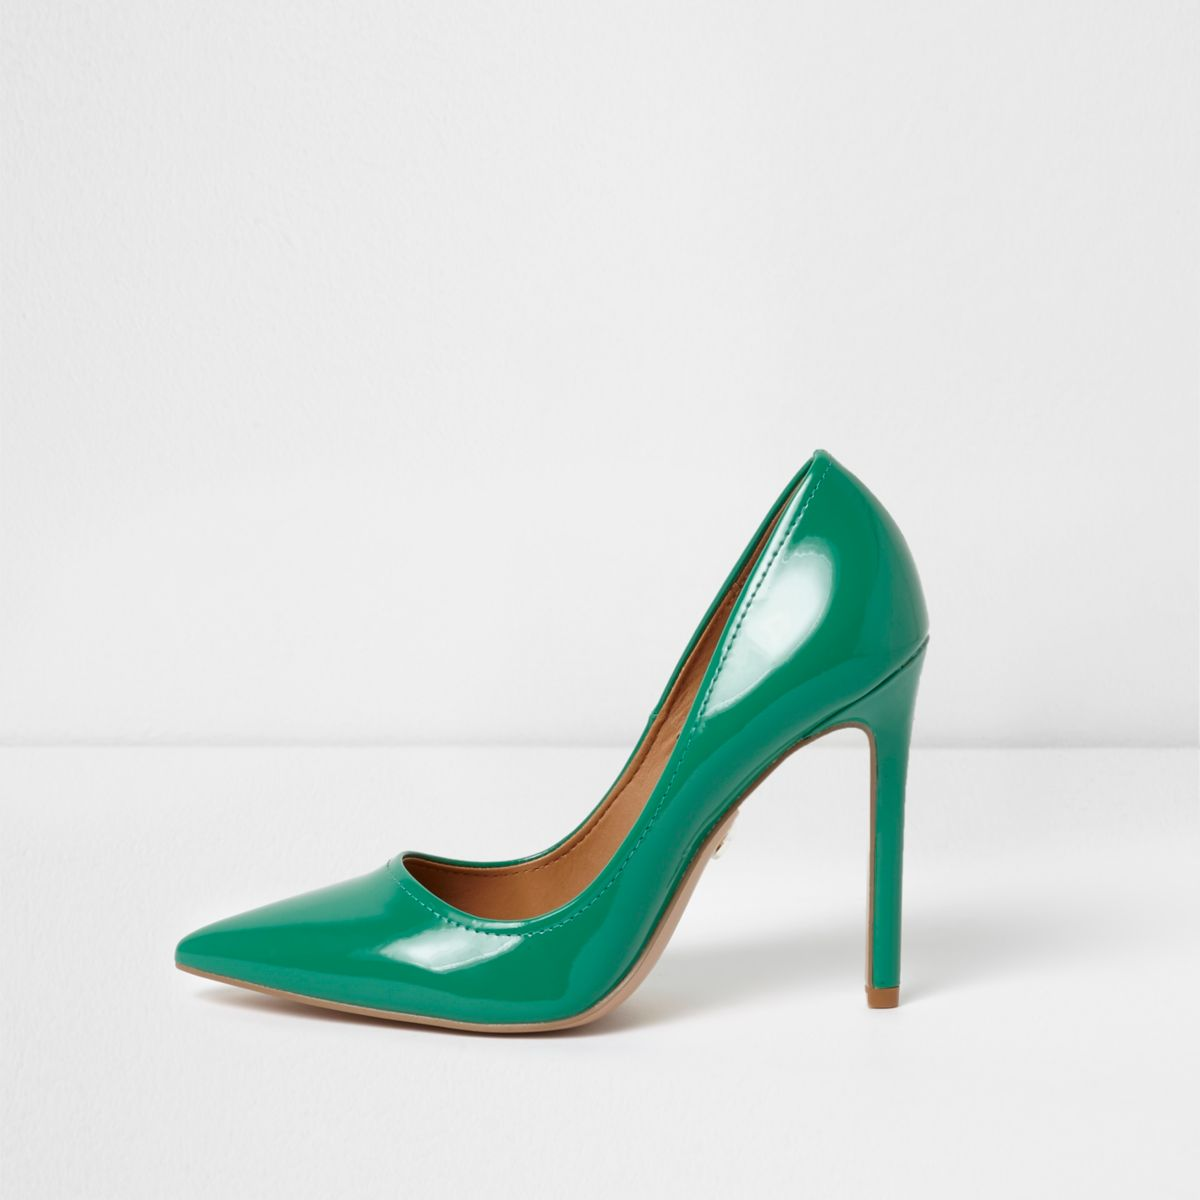 Green patent court shoes